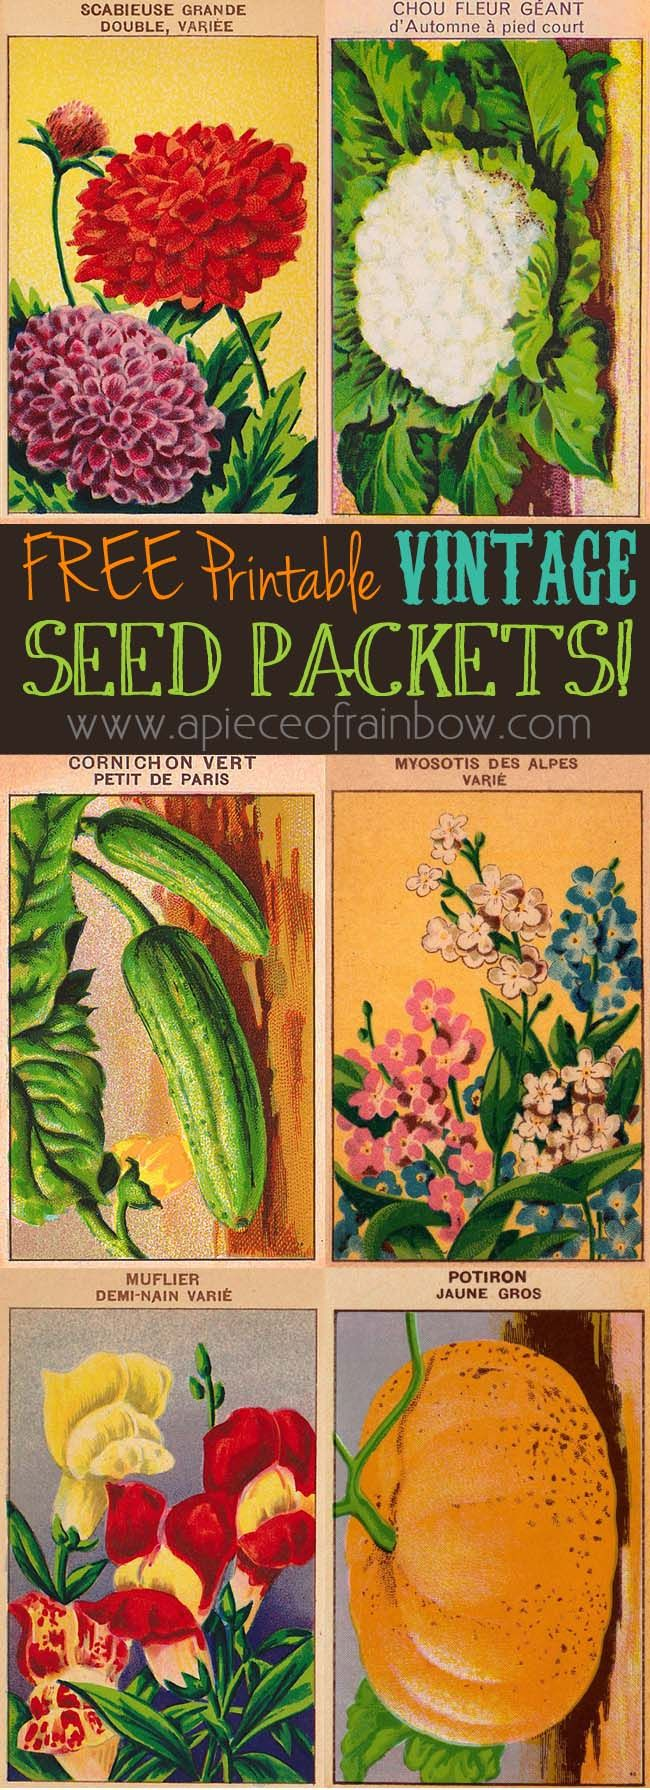 Free printable vintage French seed packets of vegetables and flowers ! Take some scrap wood, and make beautiful wall hanging art / decor out of them!